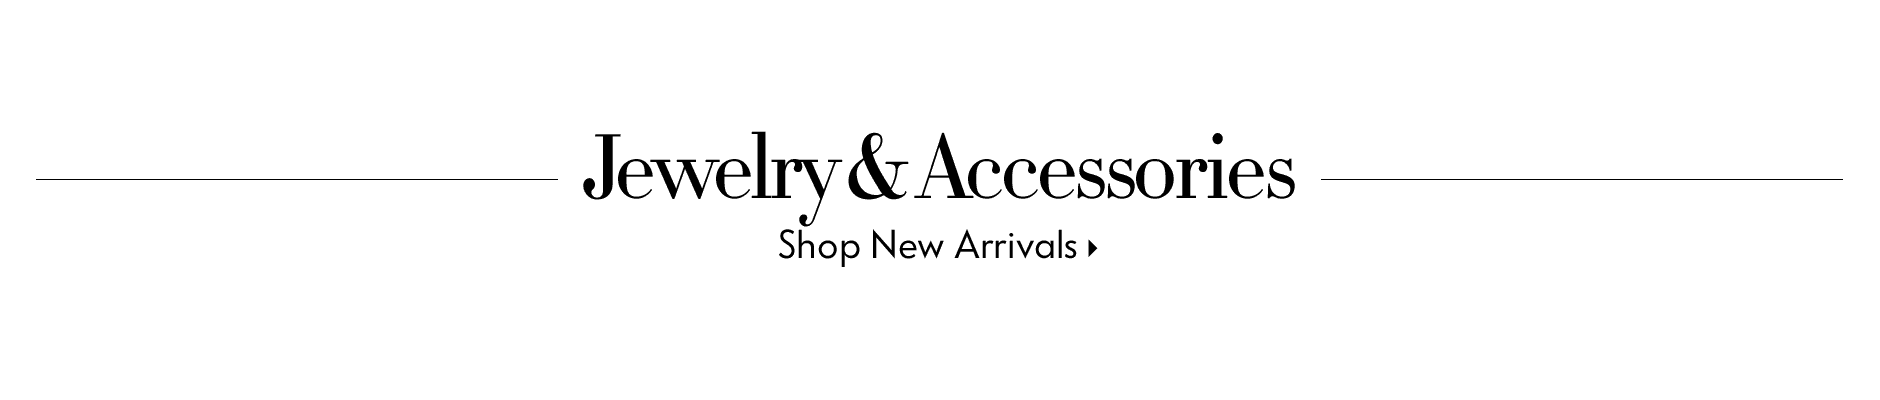 Jewelry & Accessories - Shop New Arrivals